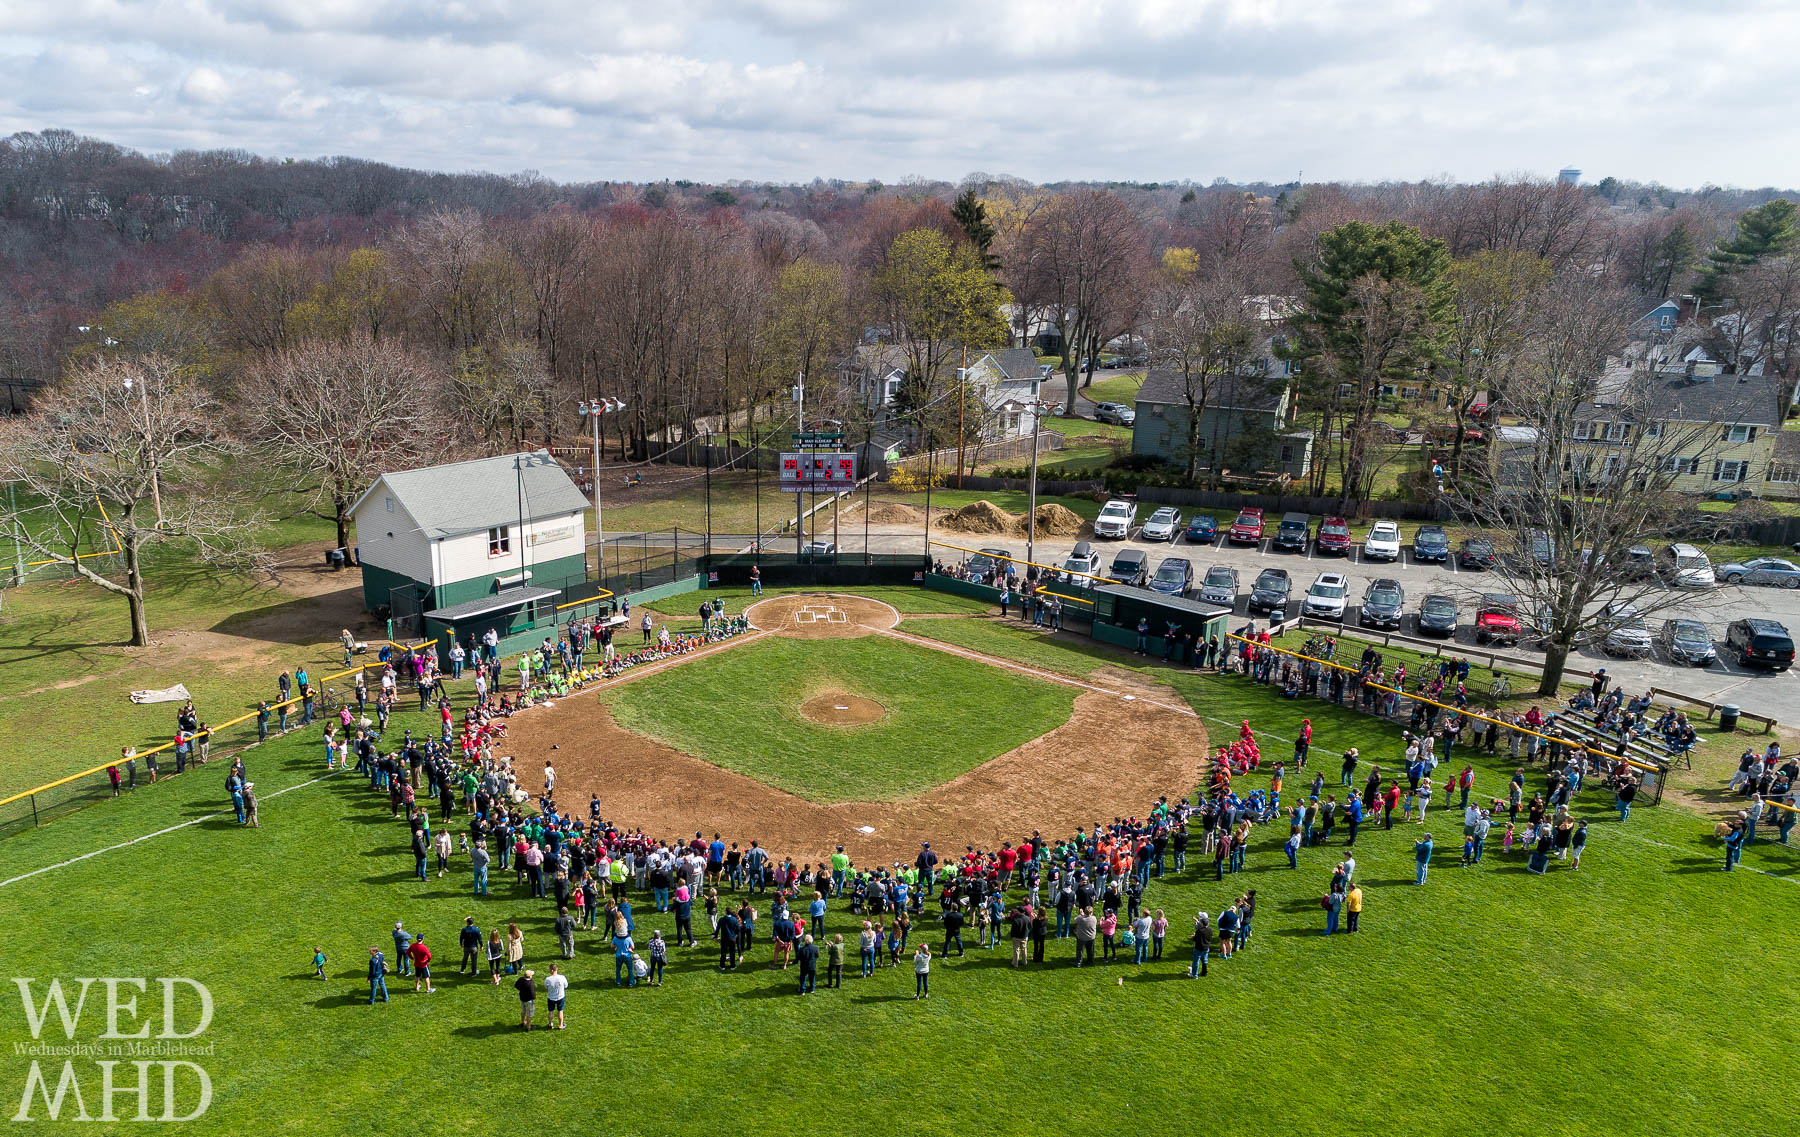 An aerial view of opening day for baseball in Marblehead when crowds of kids and parentls could gather at Gatchell park.